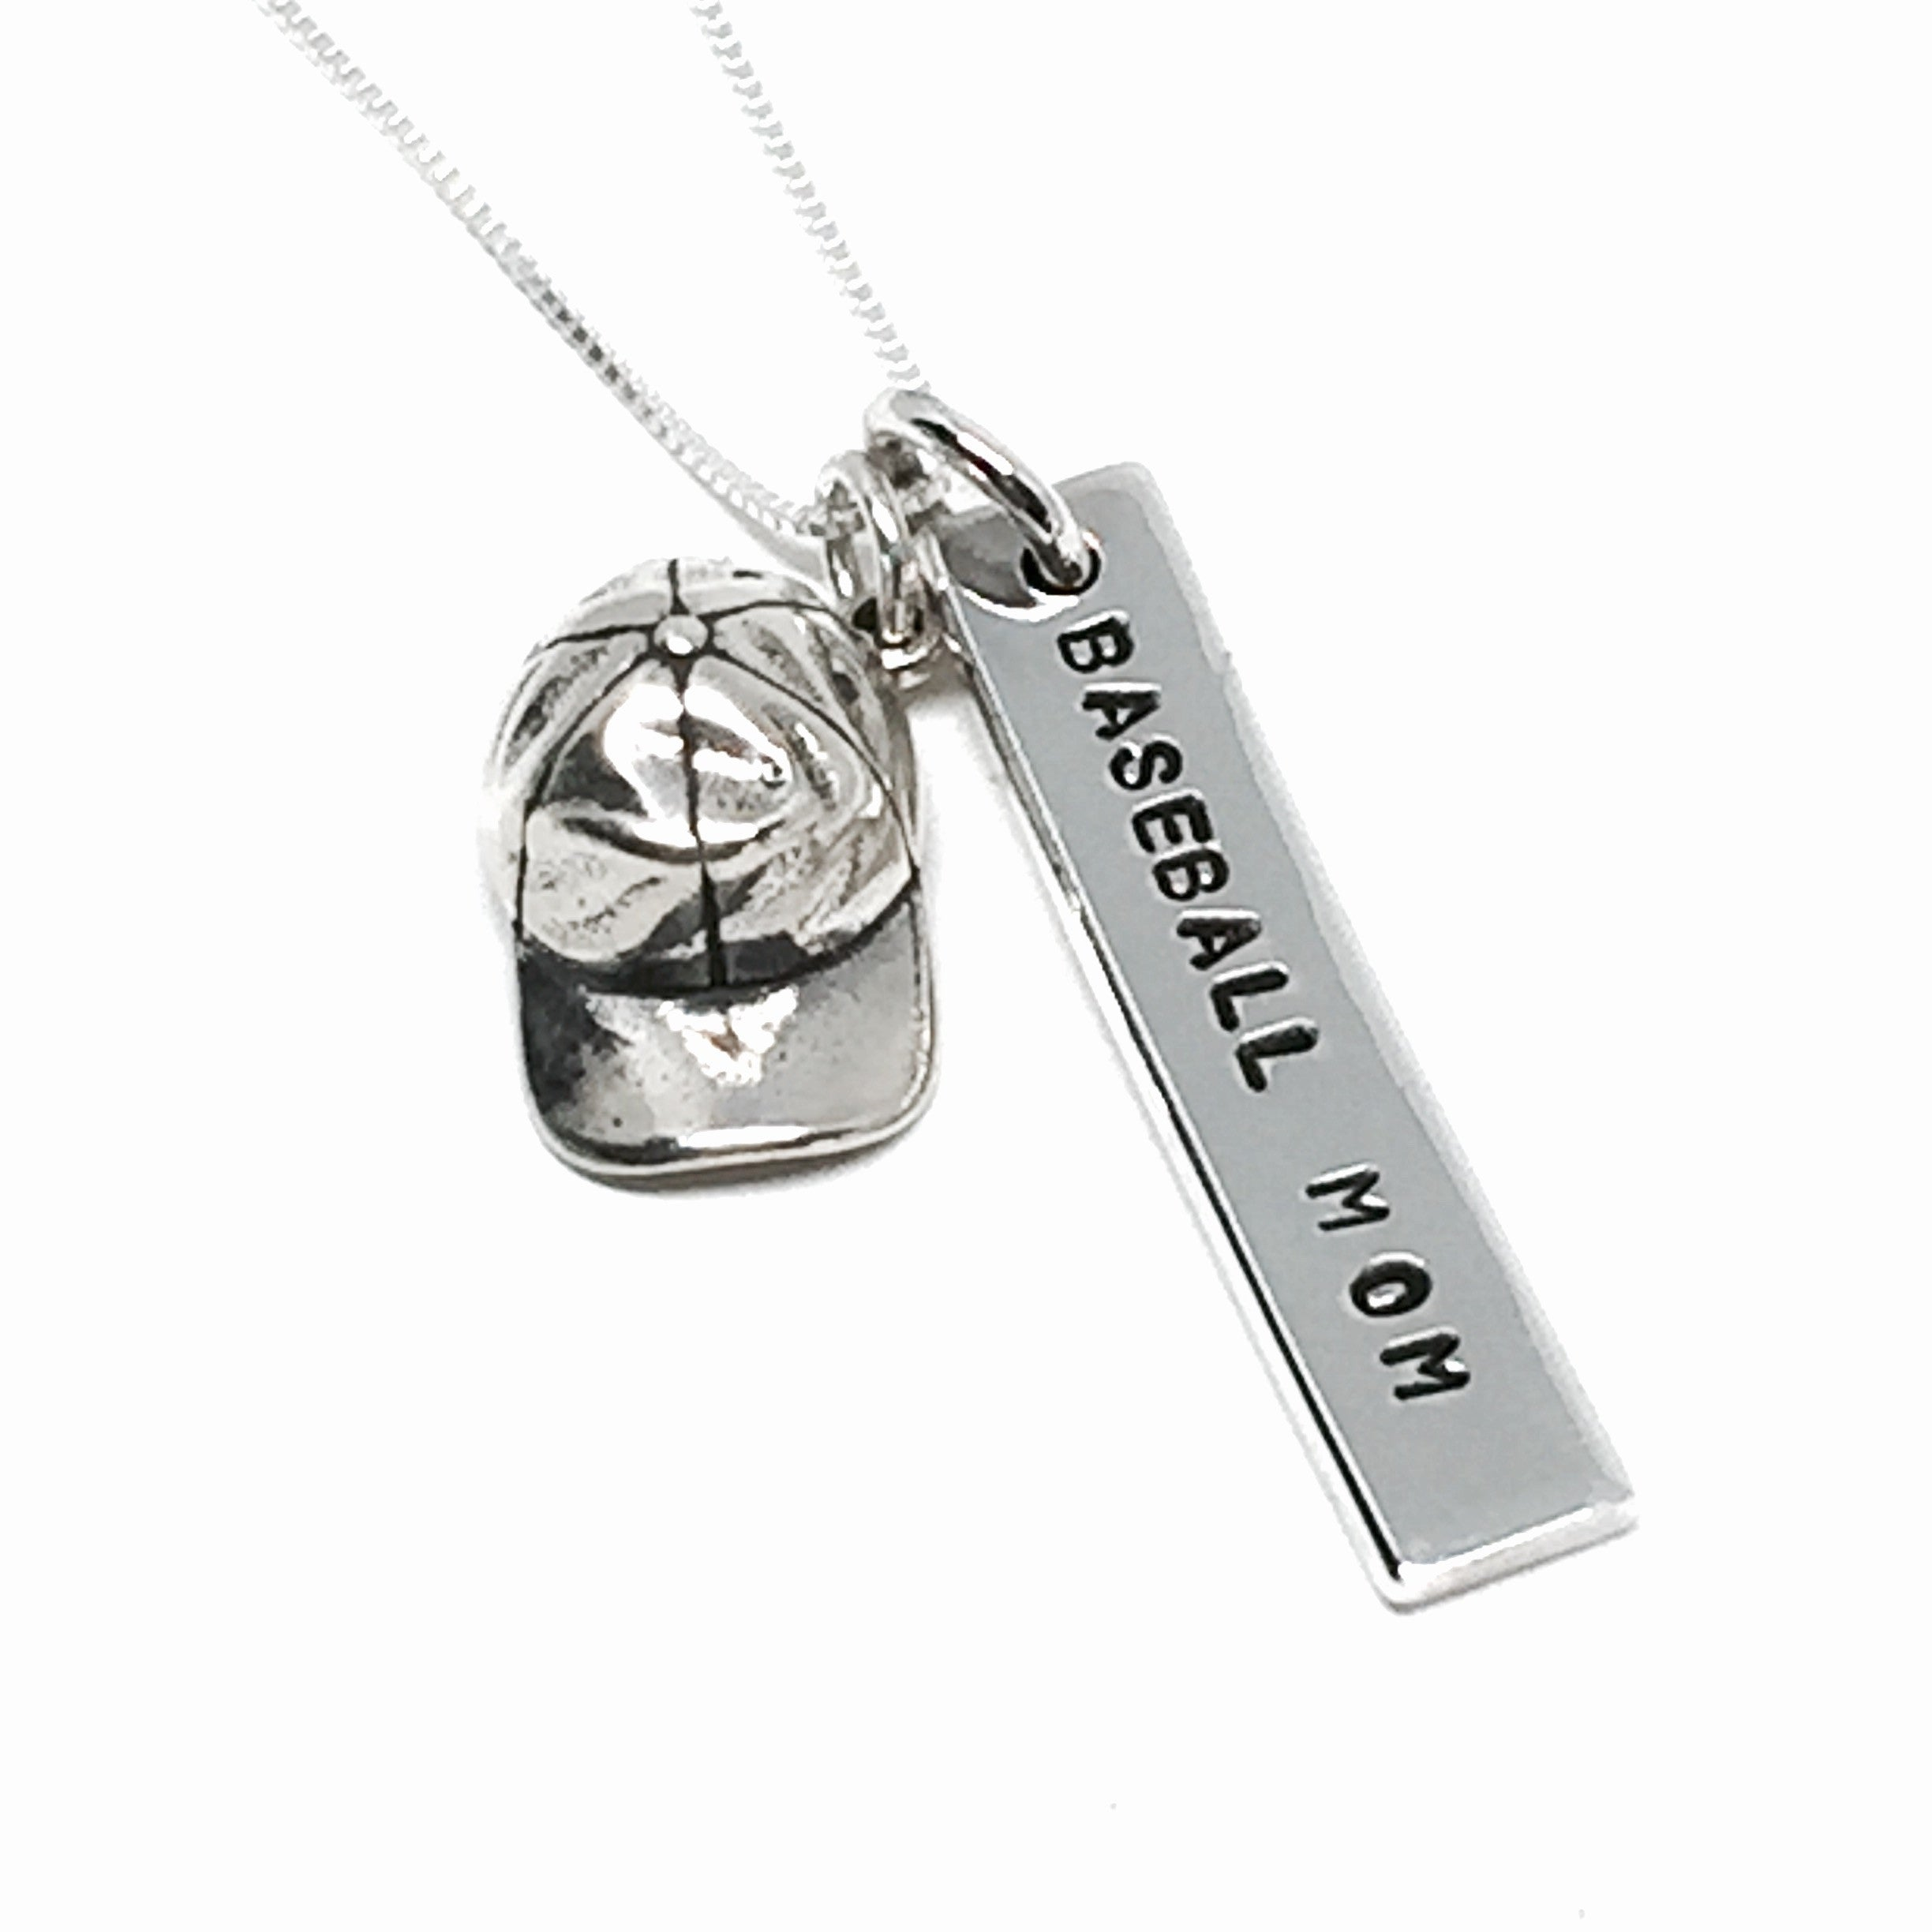 silver pendant products sports necklace baseball tinksjewelry girlfriend